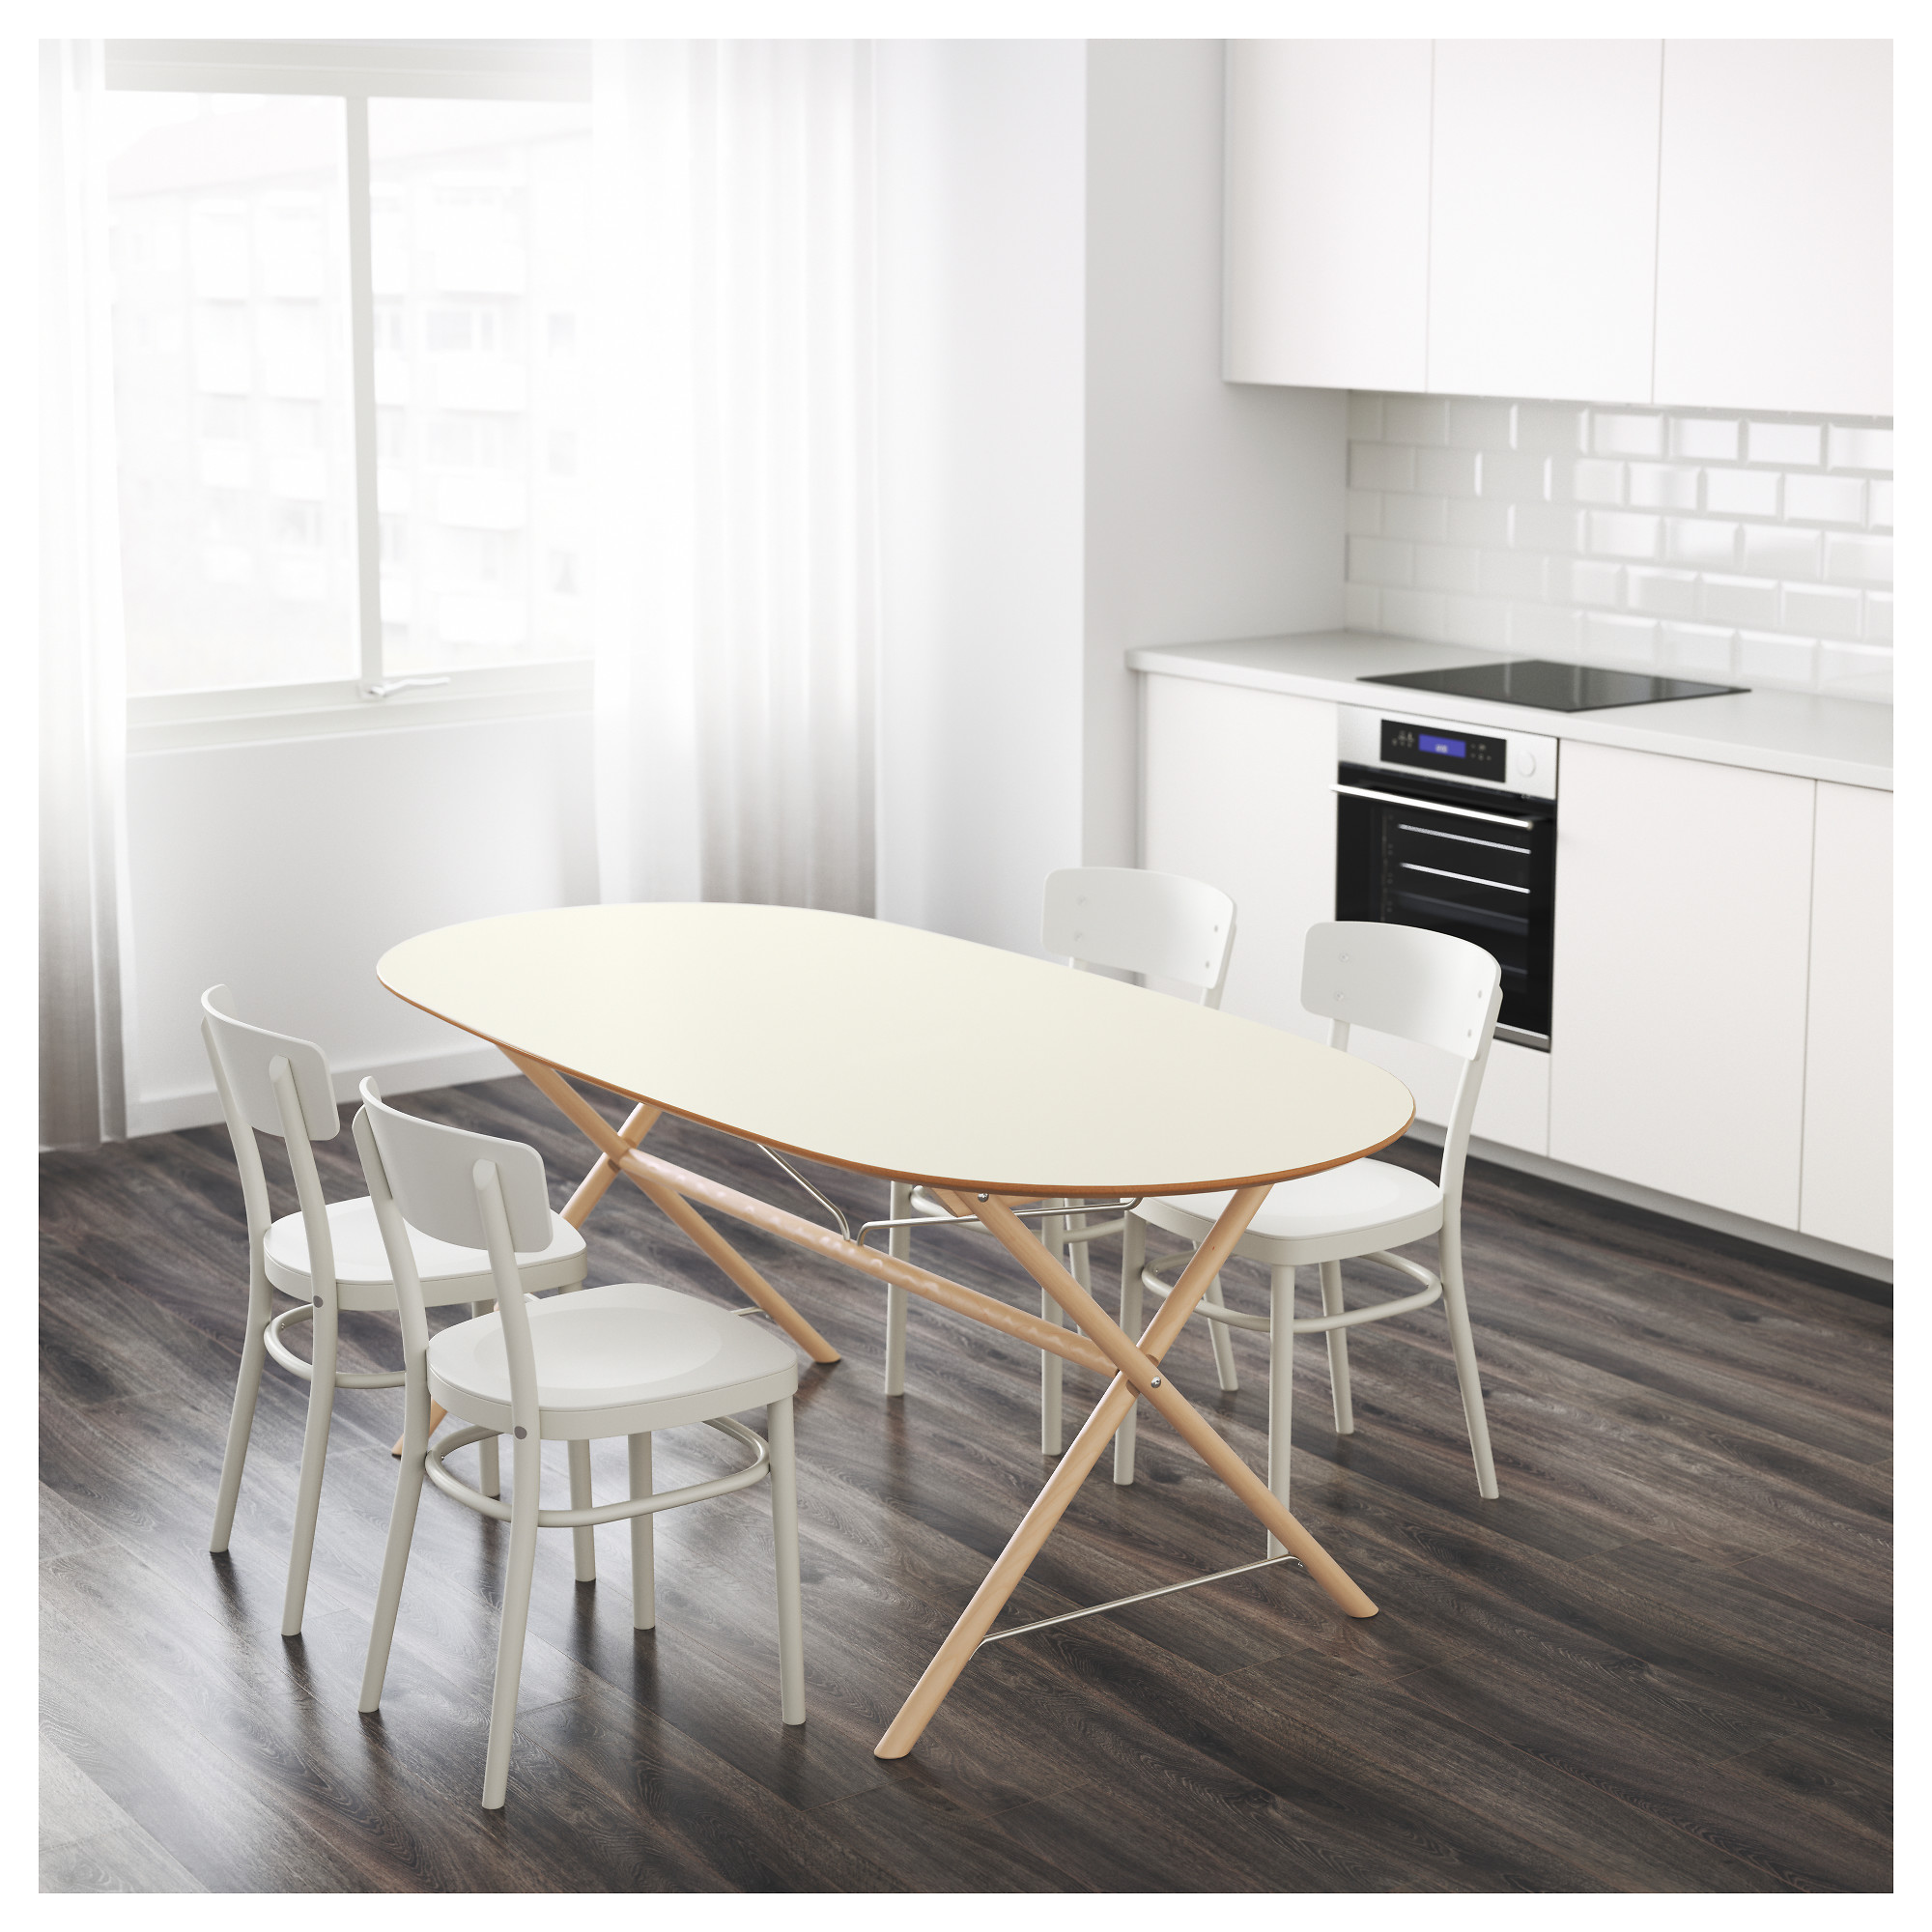 Table blanc laqu ikea best burs workstation ikea a long table top makes it e - Ikea tables gigognes ...